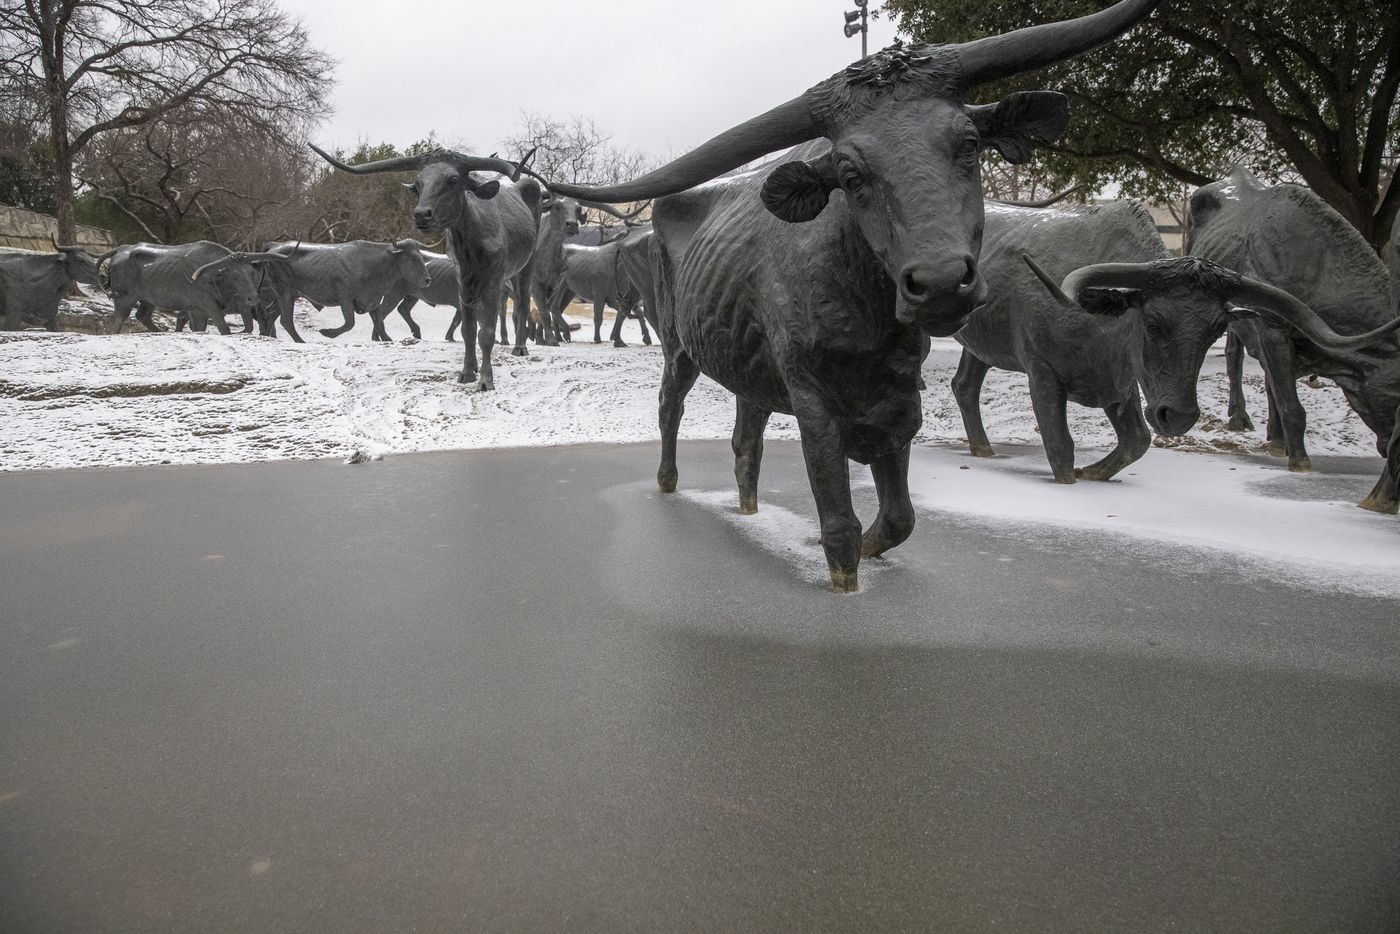 The water is frozen over at the cattle drive statues at The Plaza in front of the Dallas Convention Center in downtown Dallas on Sunday, Feb. 14, 2021, in Dallas. The region is currently under a winter storm warning.